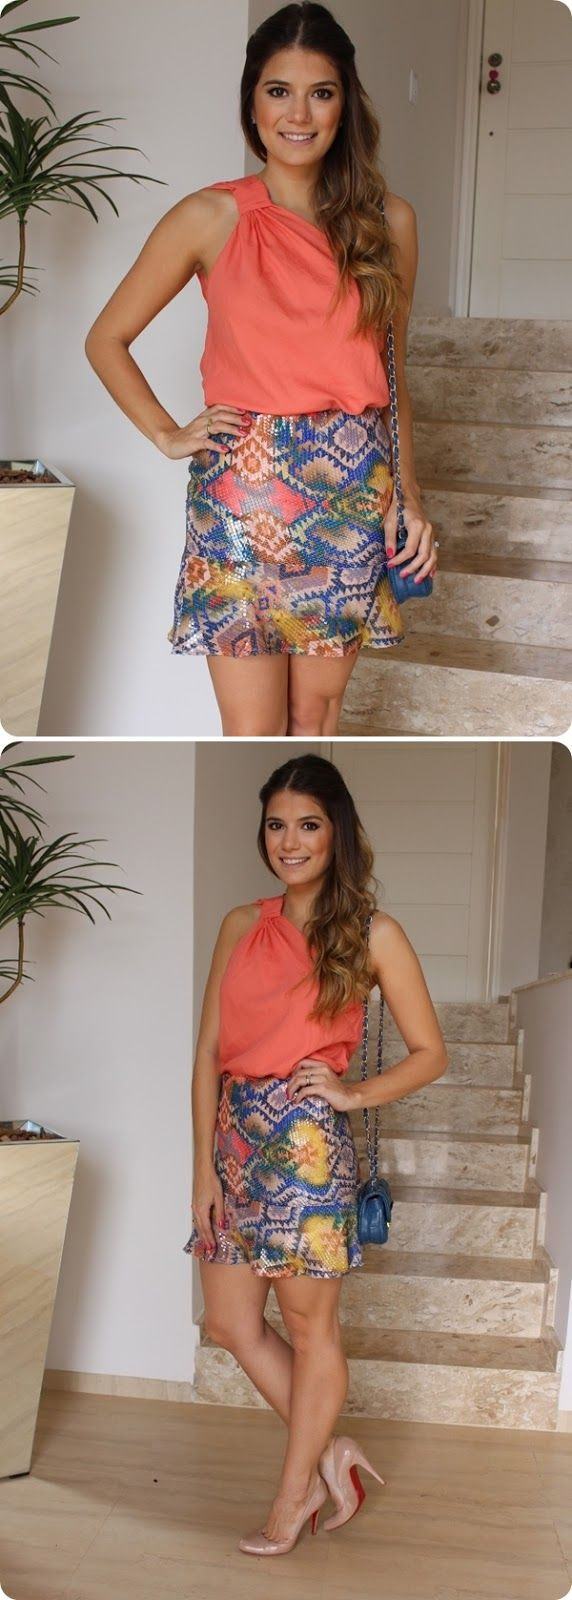 Smiling tanned chocolette in coral off-shoulder sleeveless blouse, colourful patterned miniskirt, blush stillplats w/ red soles